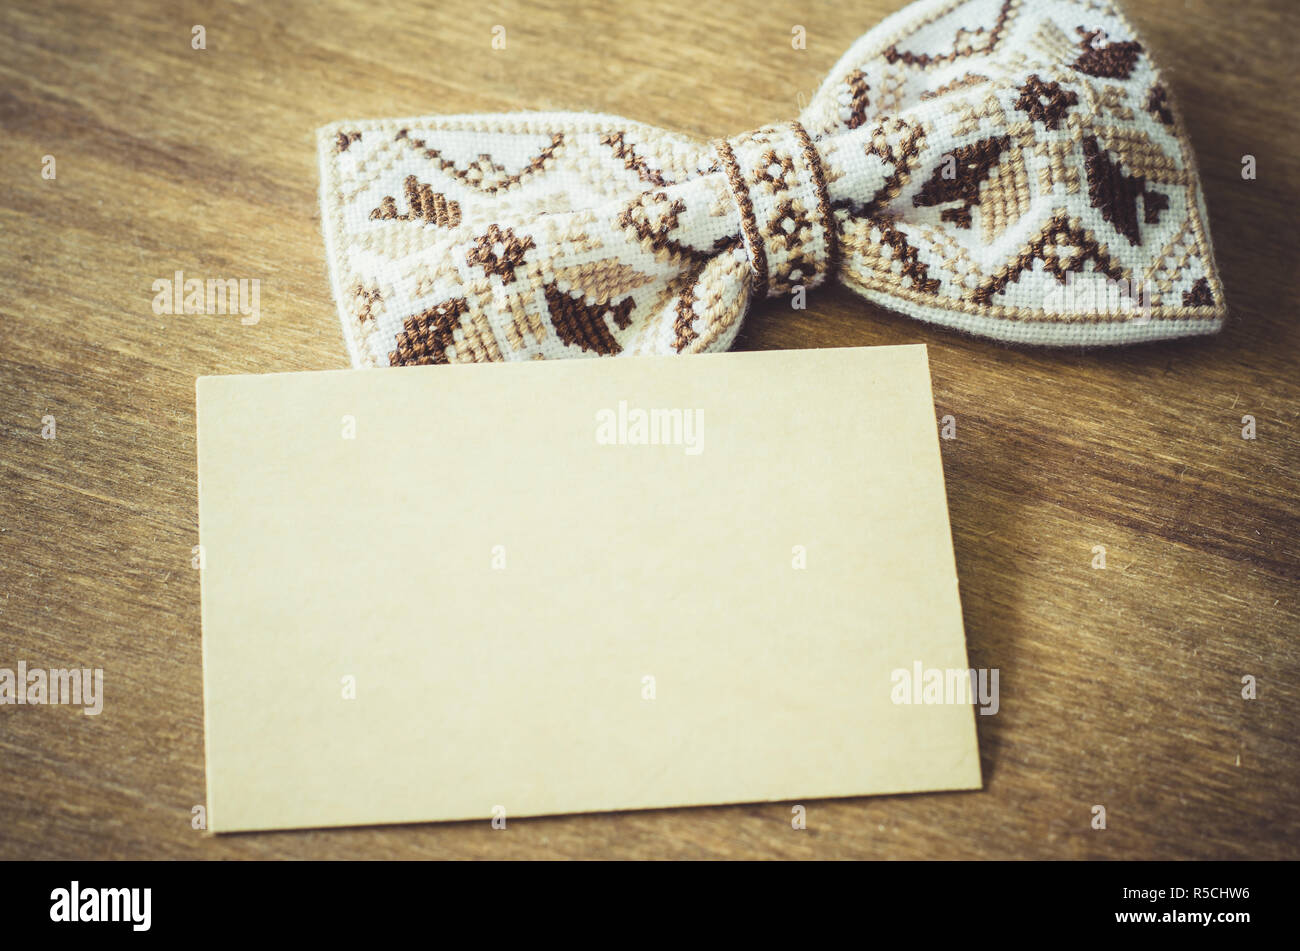 Embroidered Bow Tie and Empty Card on Wooden Brown Background. Father's day Concept. Rustic Style - Stock Image